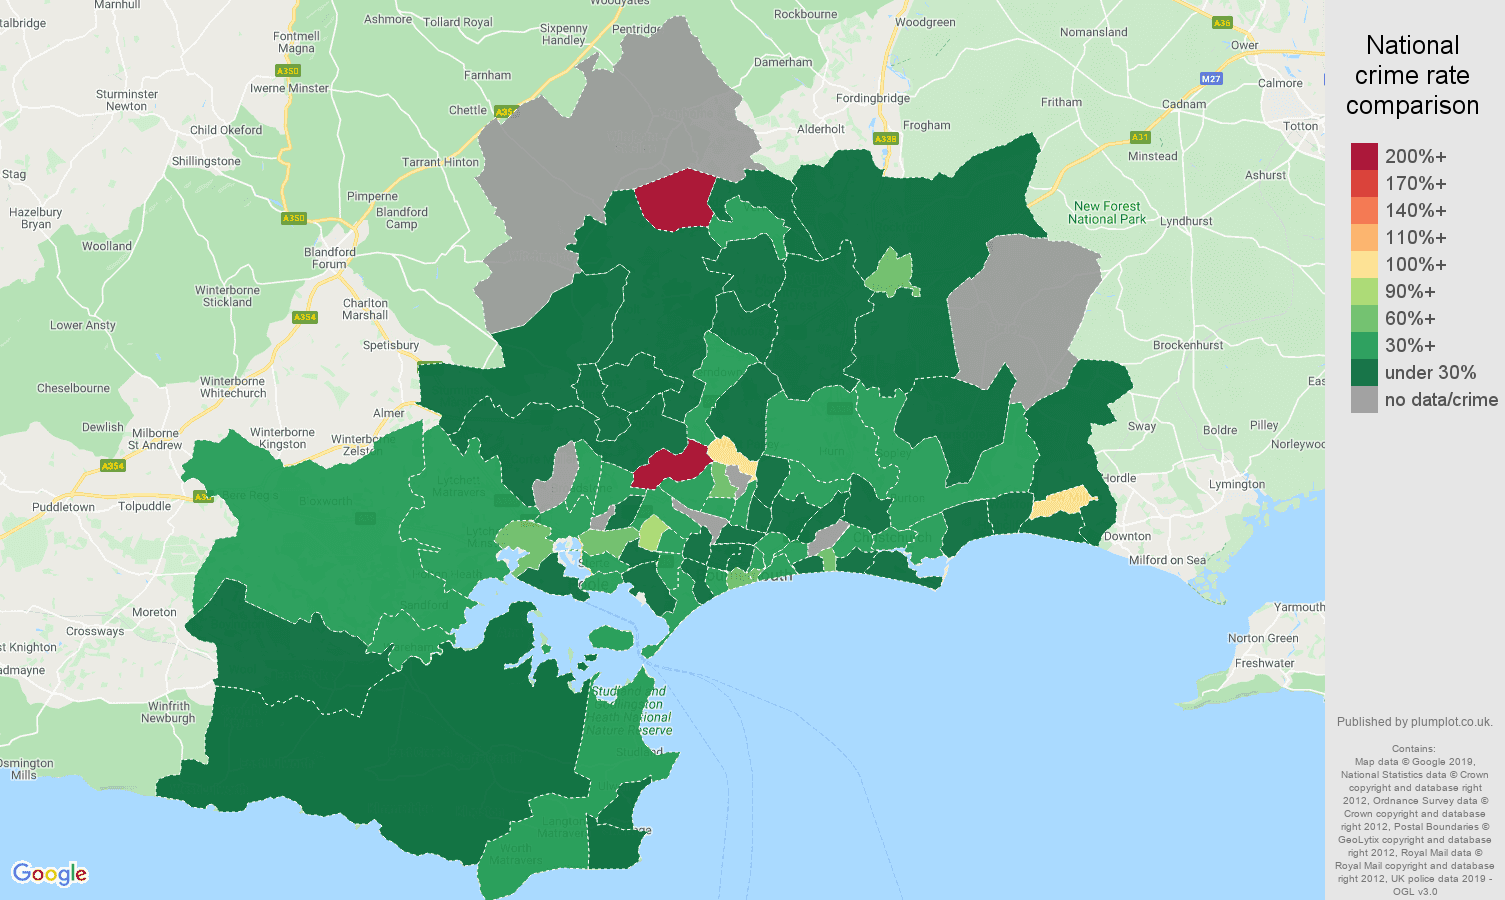 Bournemouth other crime rate comparison map